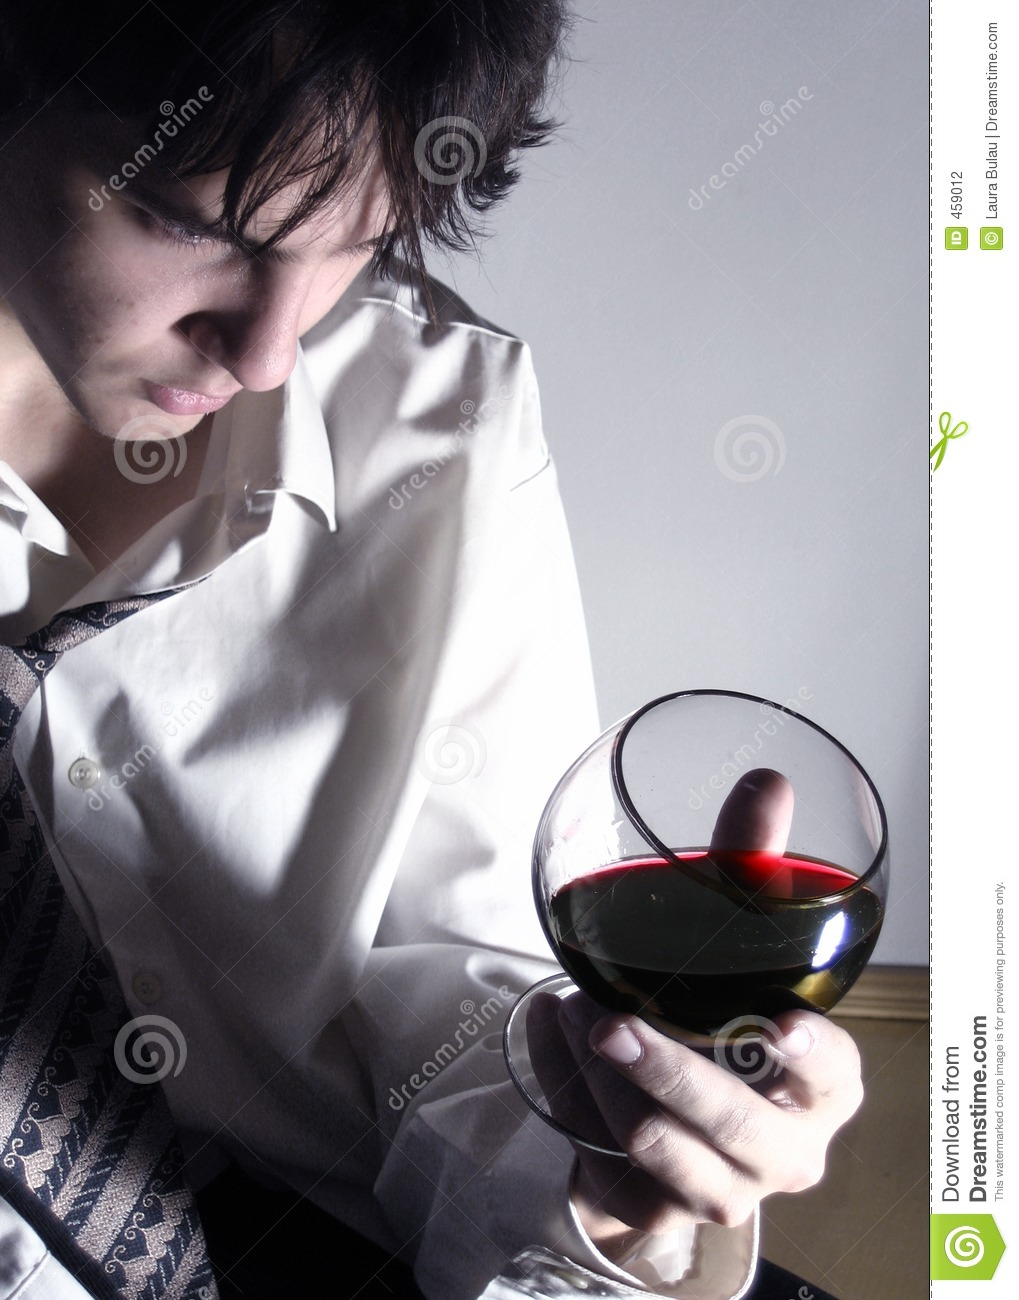 Download Red wine 3 stock photo. Image of head, look, hair, glass - 459012